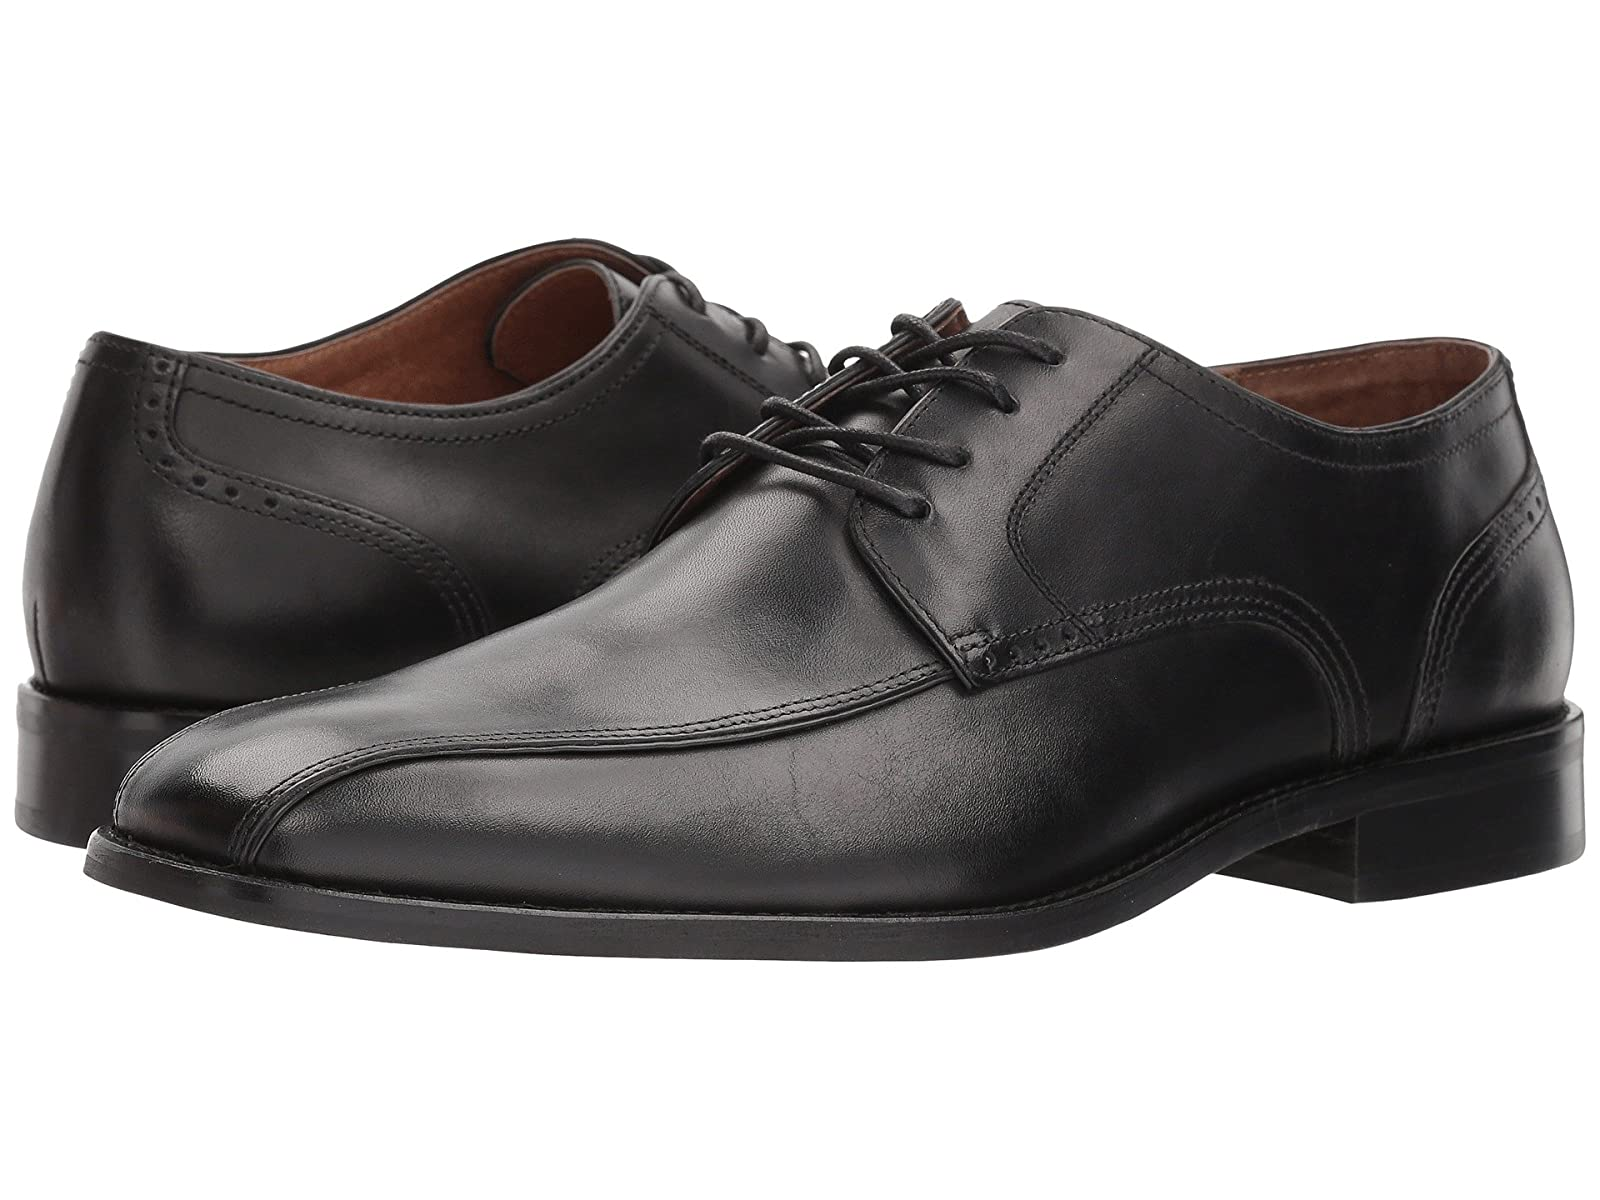 Johnston & Murphy Knowland Runoff LaceCheap and distinctive eye-catching shoes